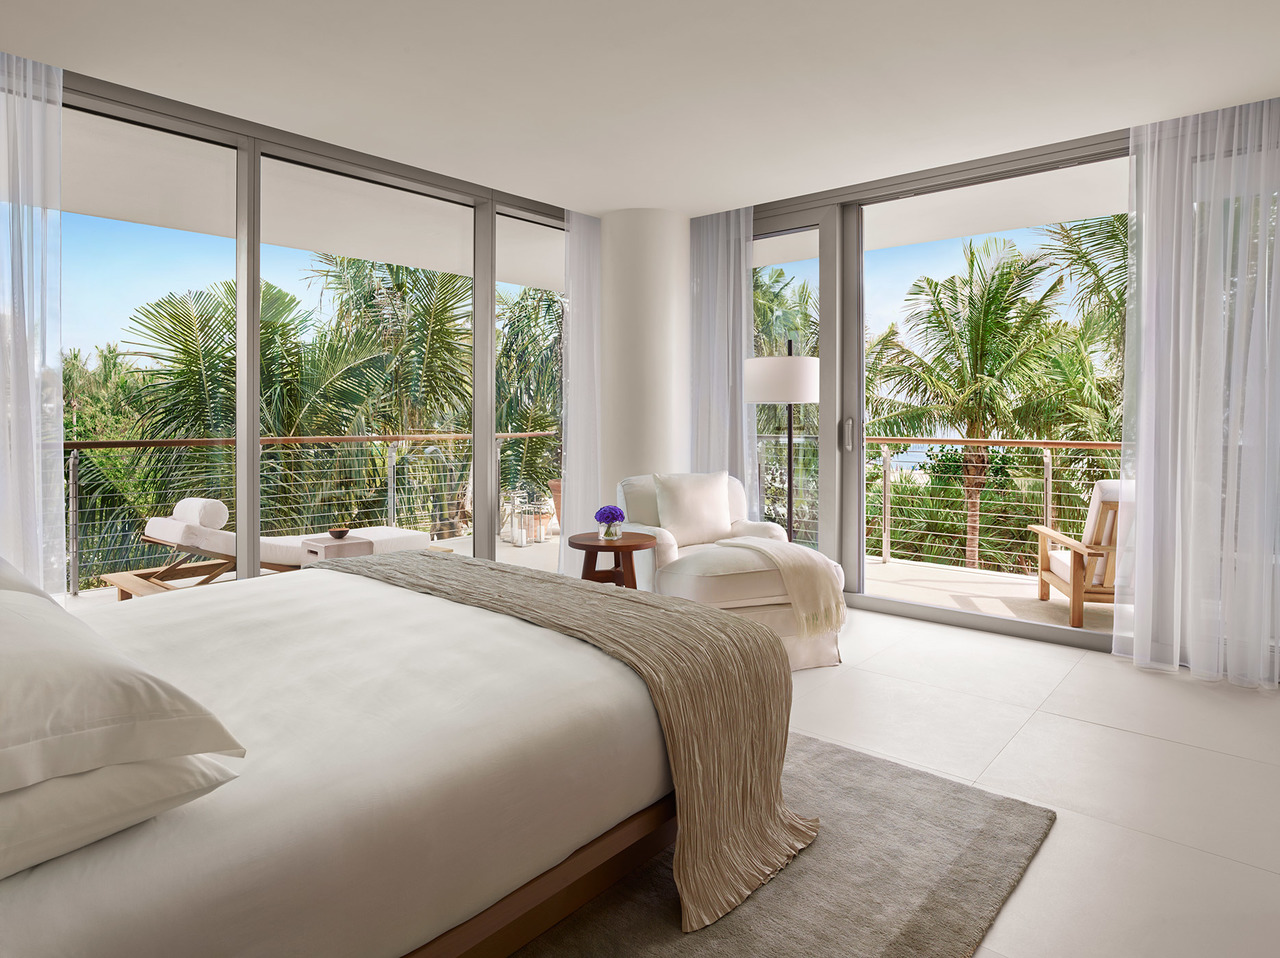 edition-miami-ian-schrager-room.jpg